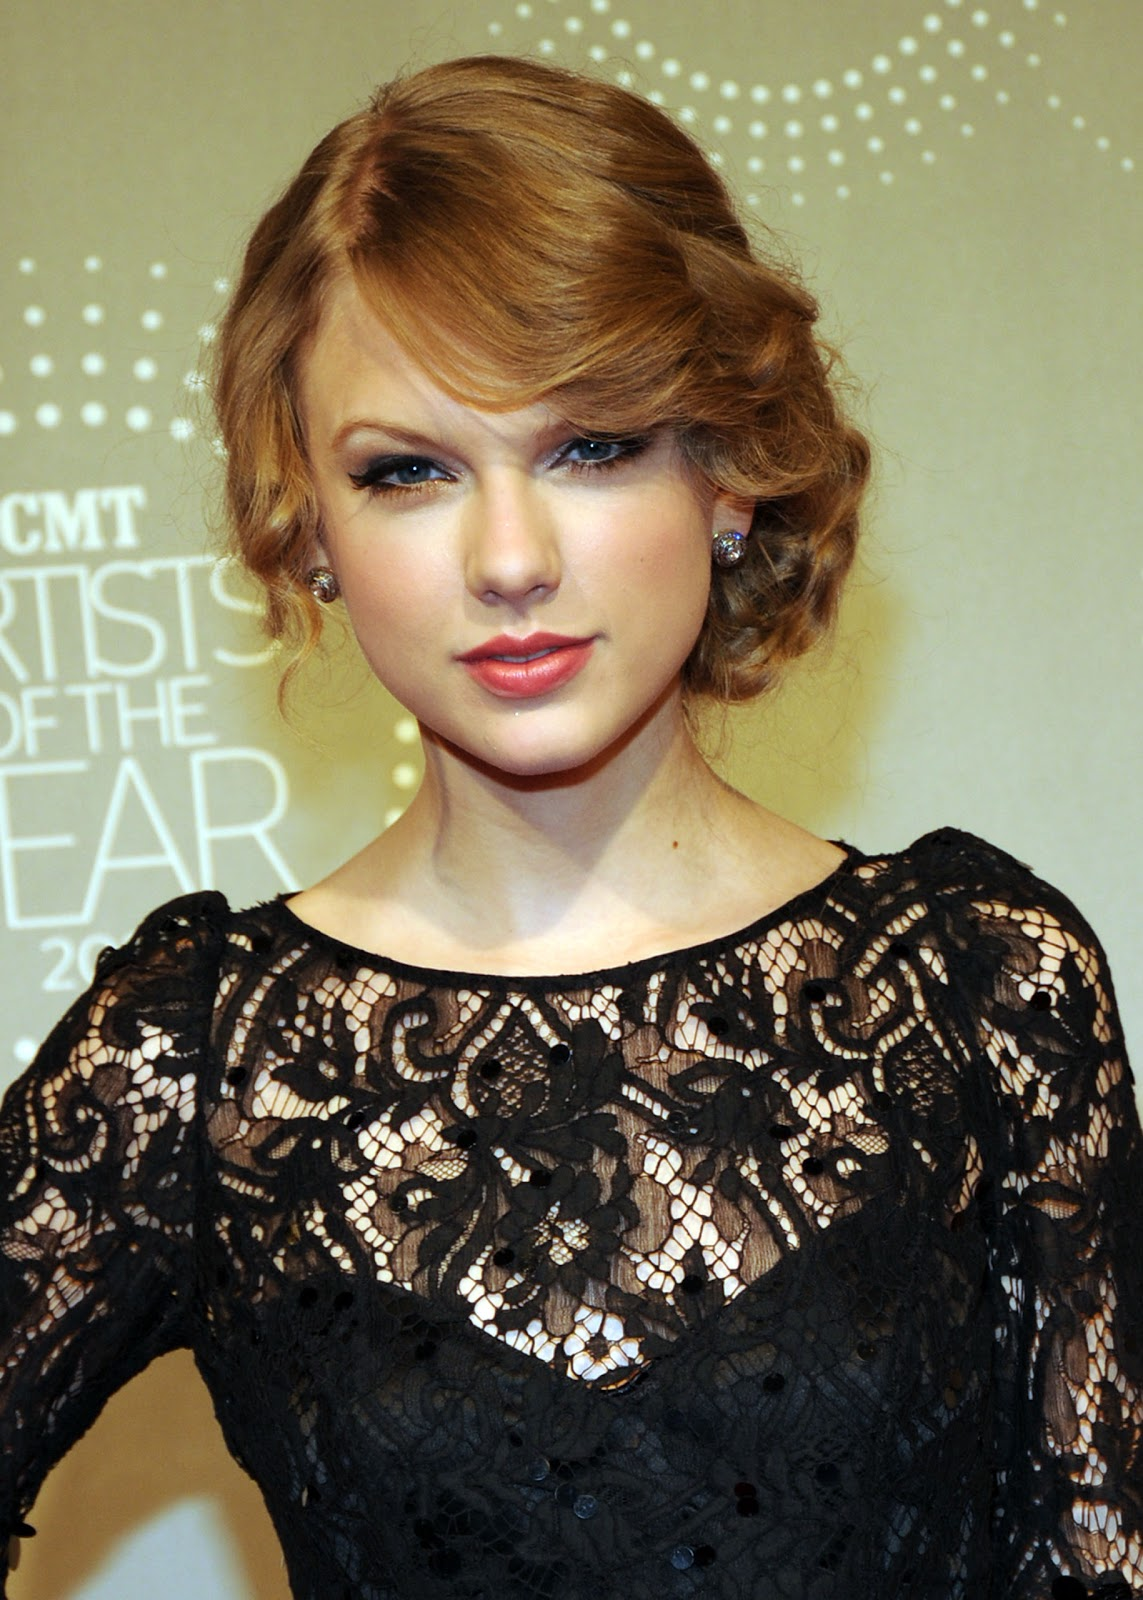 http://2.bp.blogspot.com/-_X84xGka8i0/Tl9U8NYH5wI/AAAAAAAAAZ8/ULgGxe96zVo/s1600/Taylor-Swift-songs-about-lyrics-love-story-hairstyle+%25281%2529.jpg